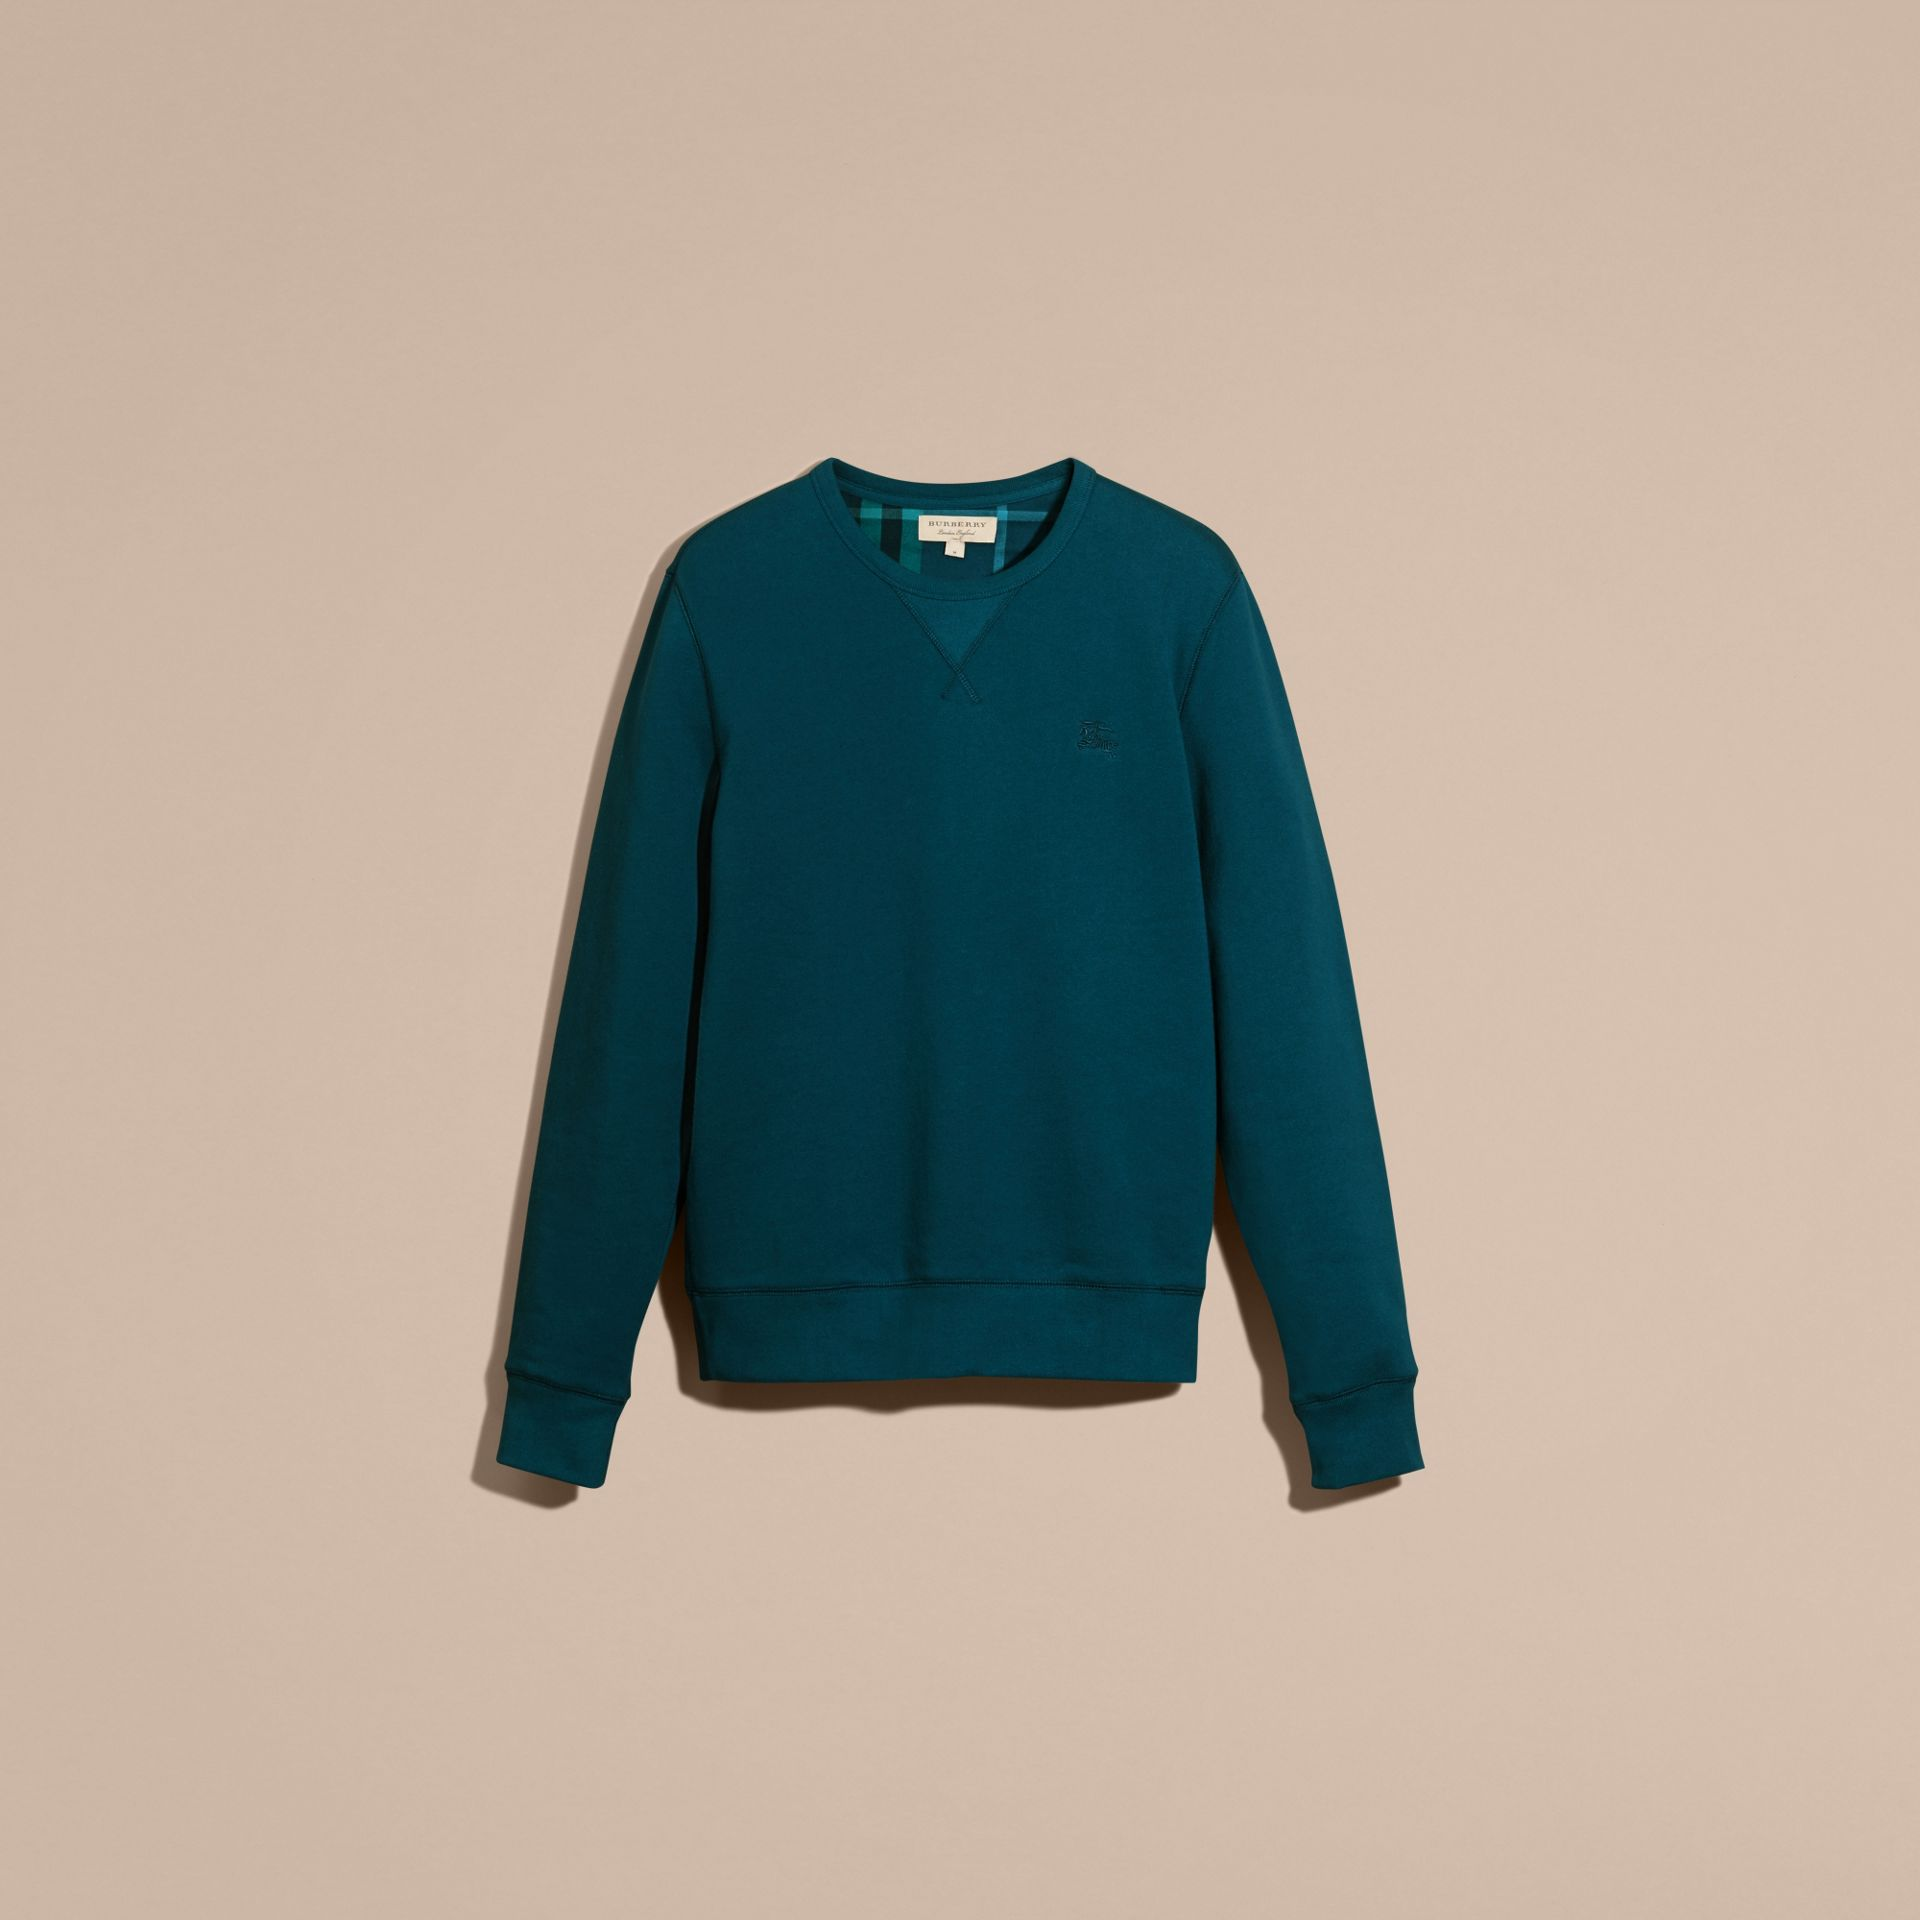 Mineral blue Cotton Blend Jersey Sweatshirt - gallery image 4